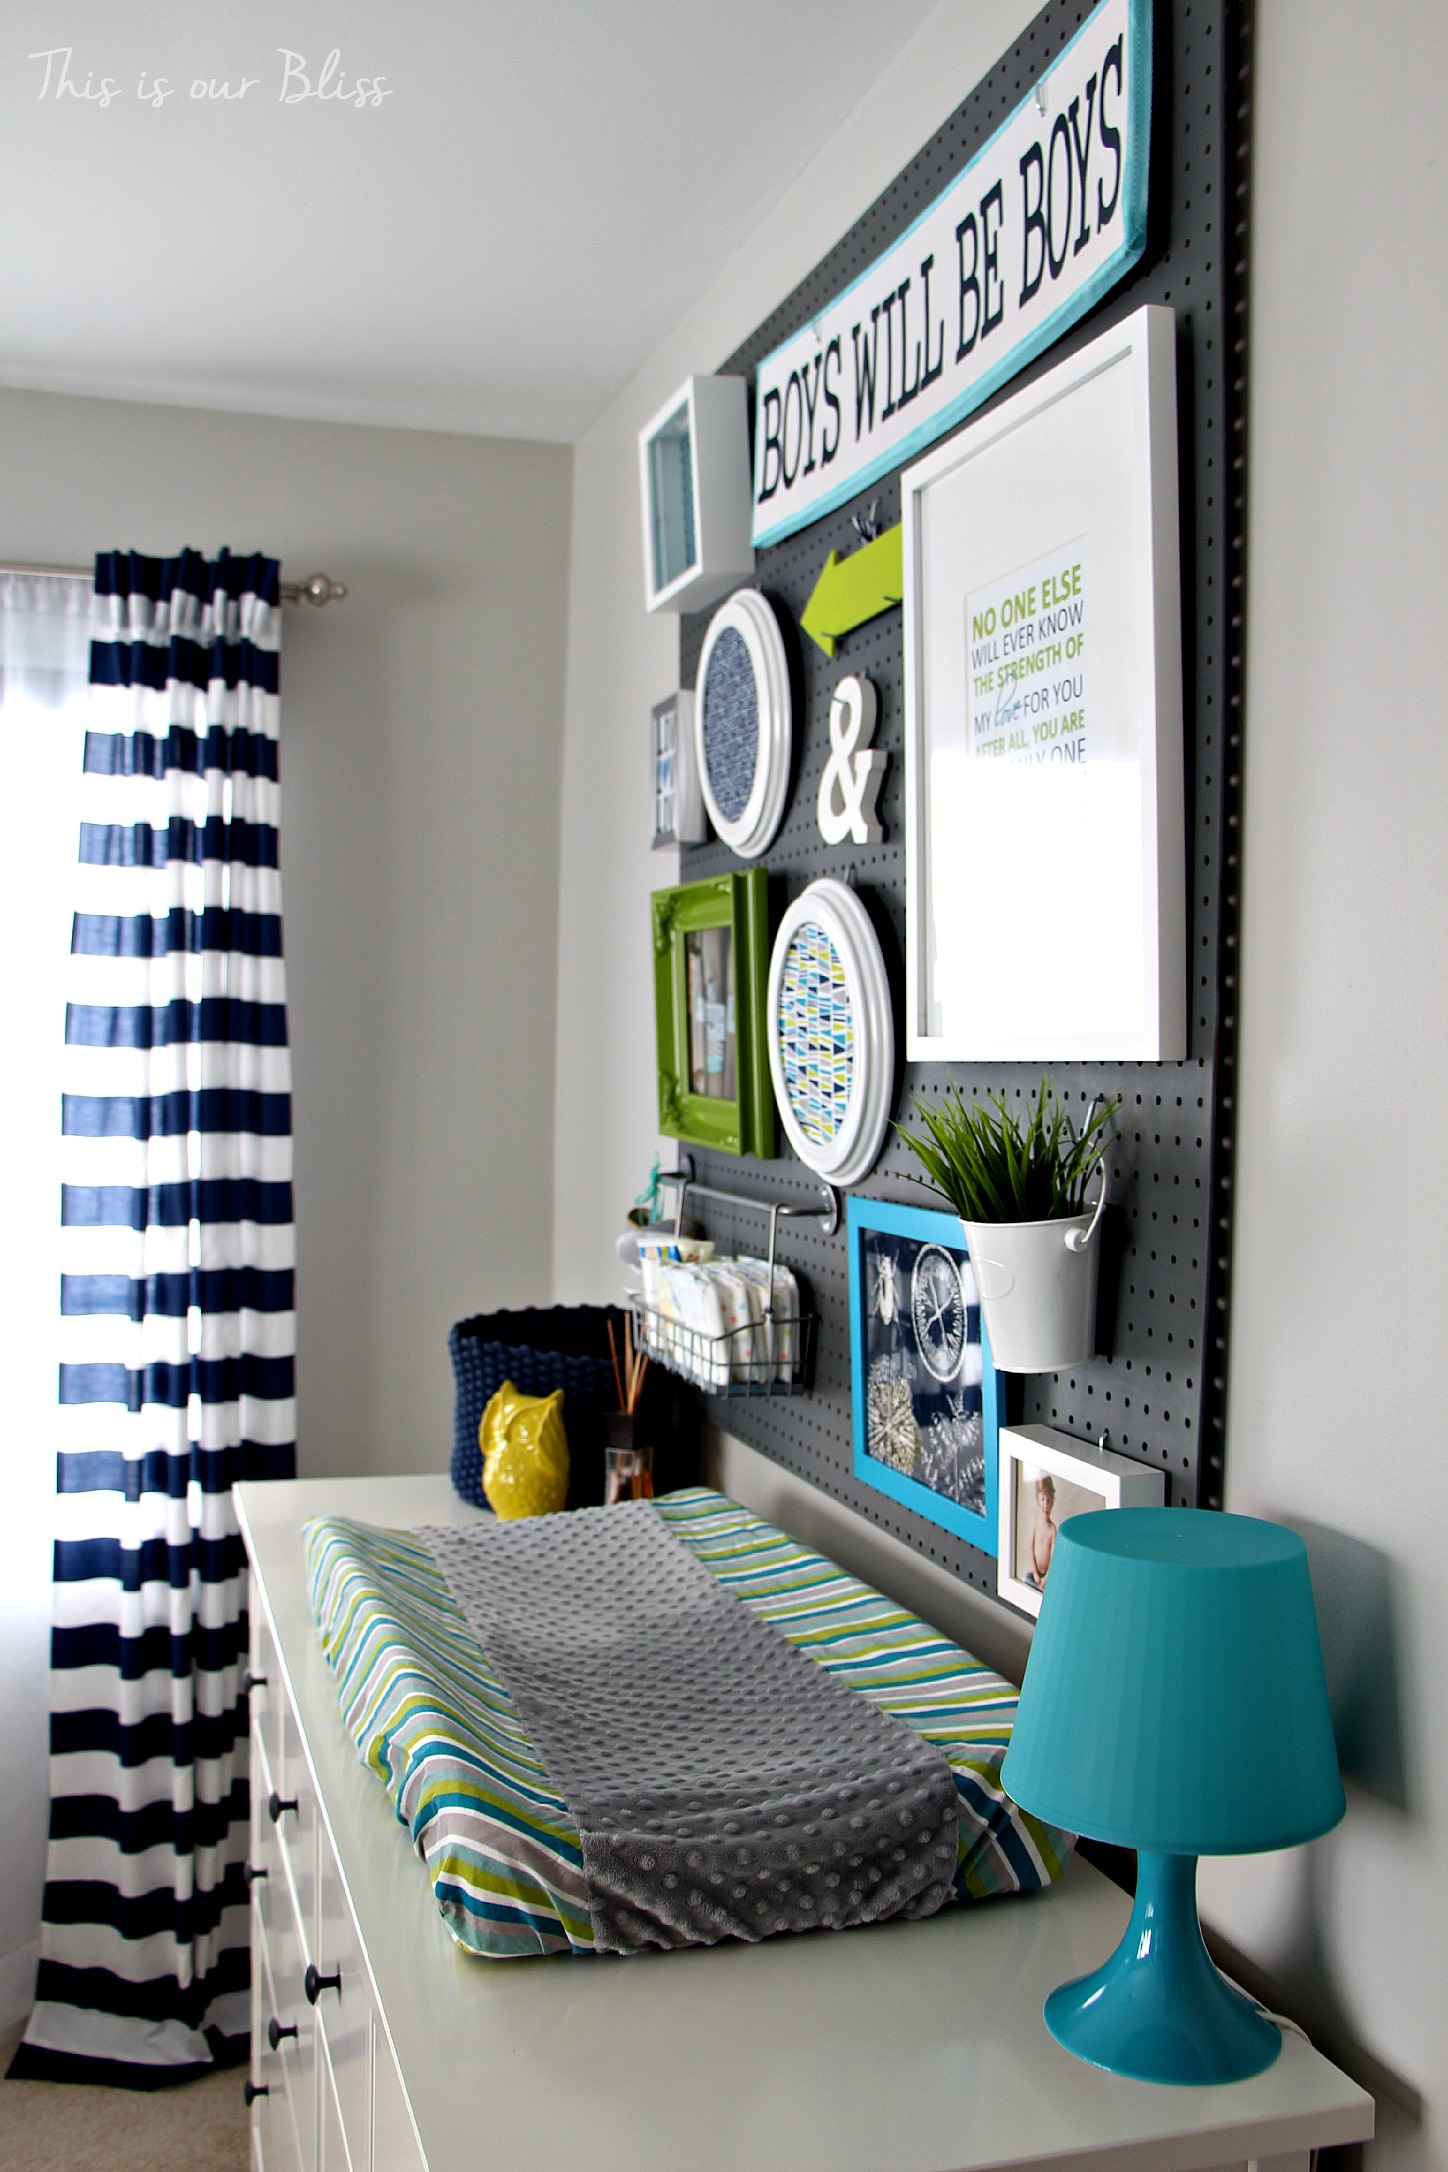 diy back tab curtains with bed sheets